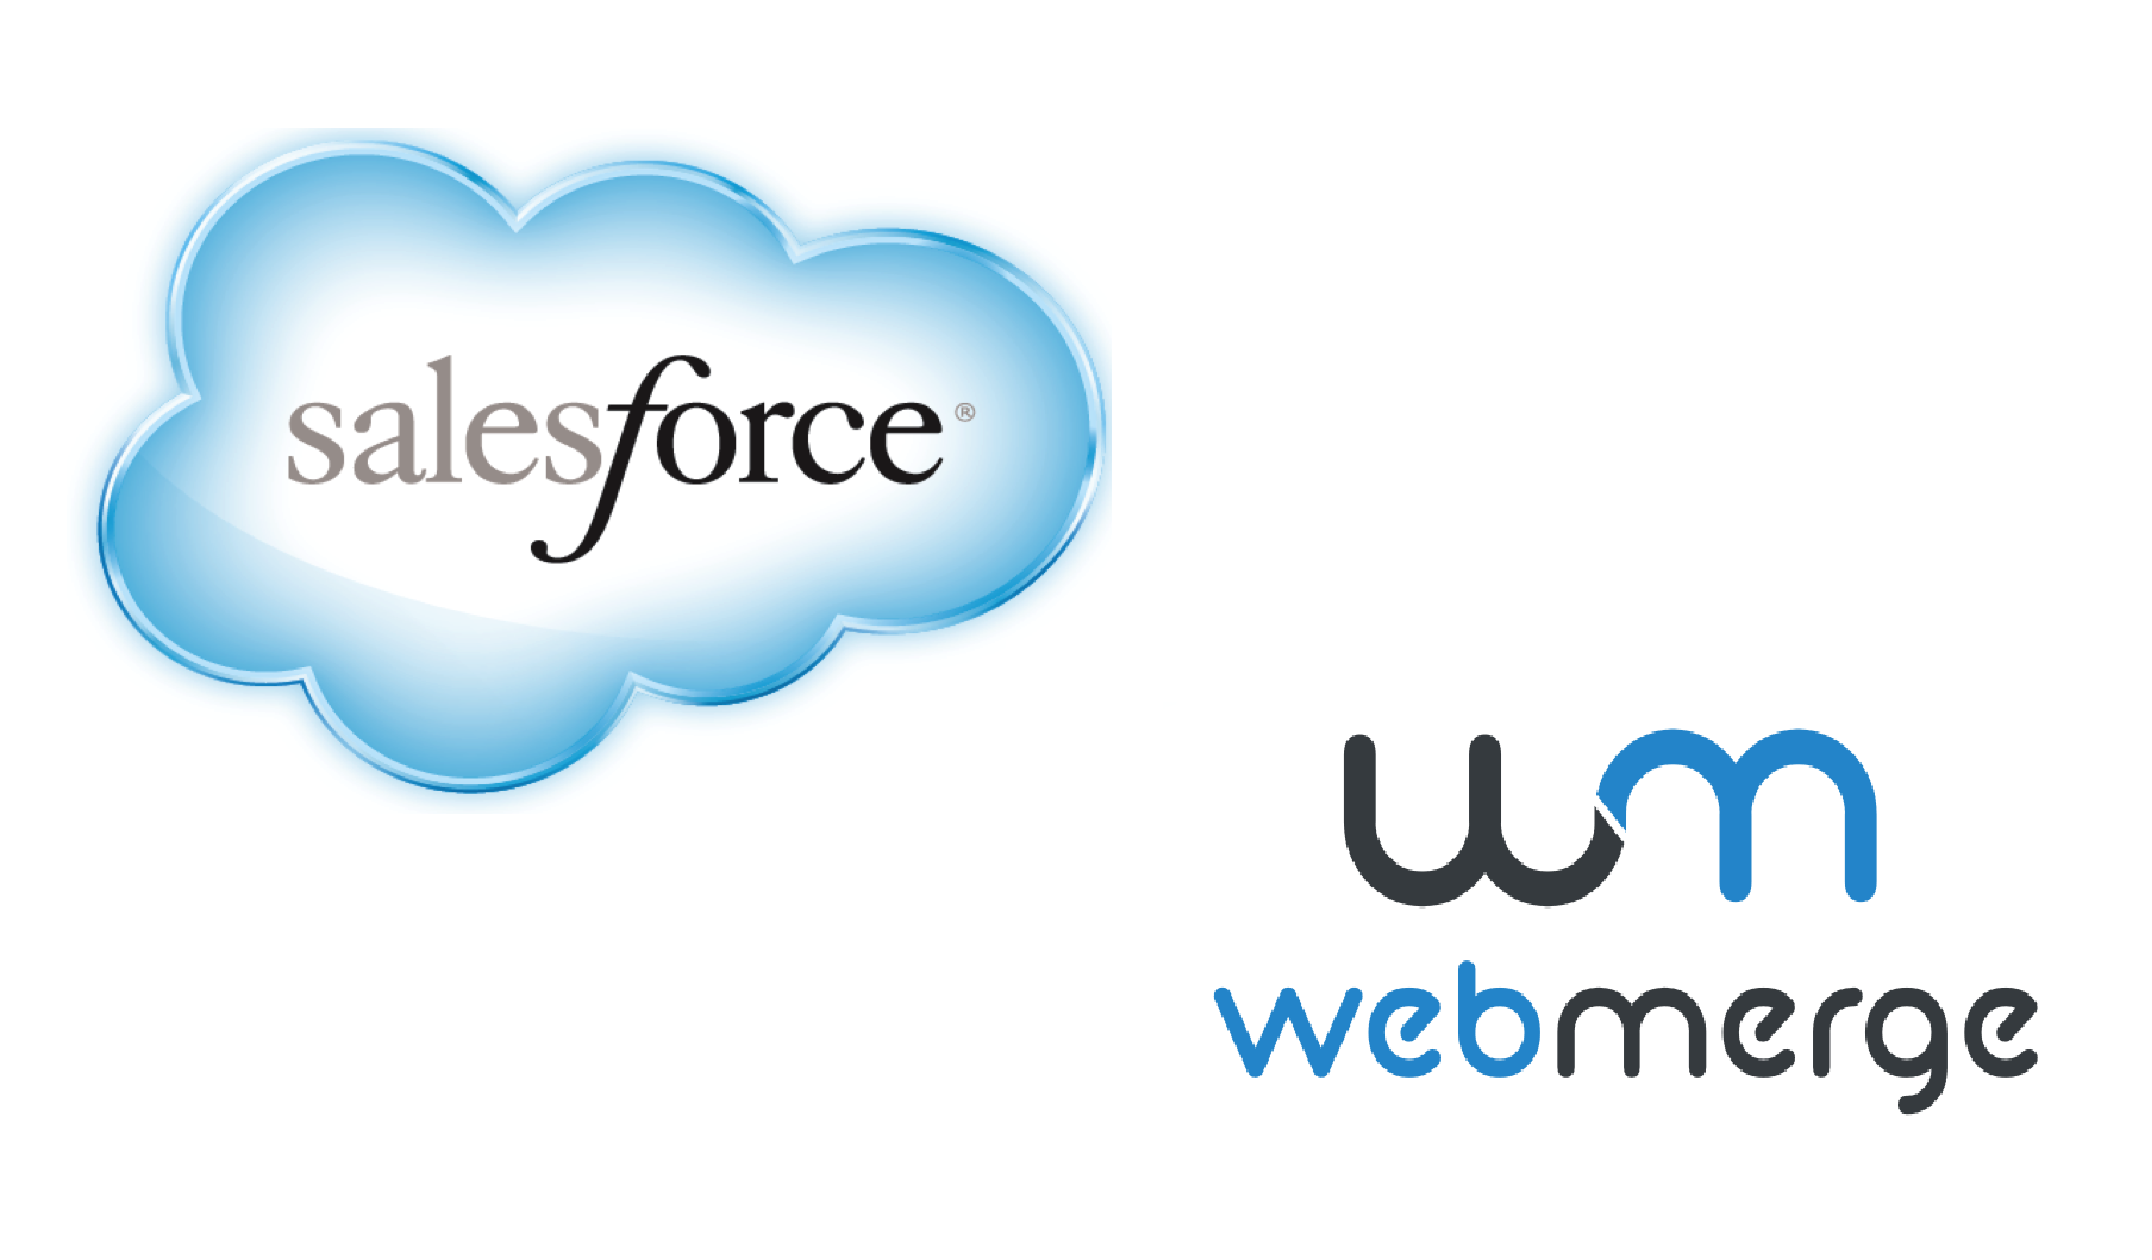 Salesforce | Implementing WebMerge for Salesforce Using Apex